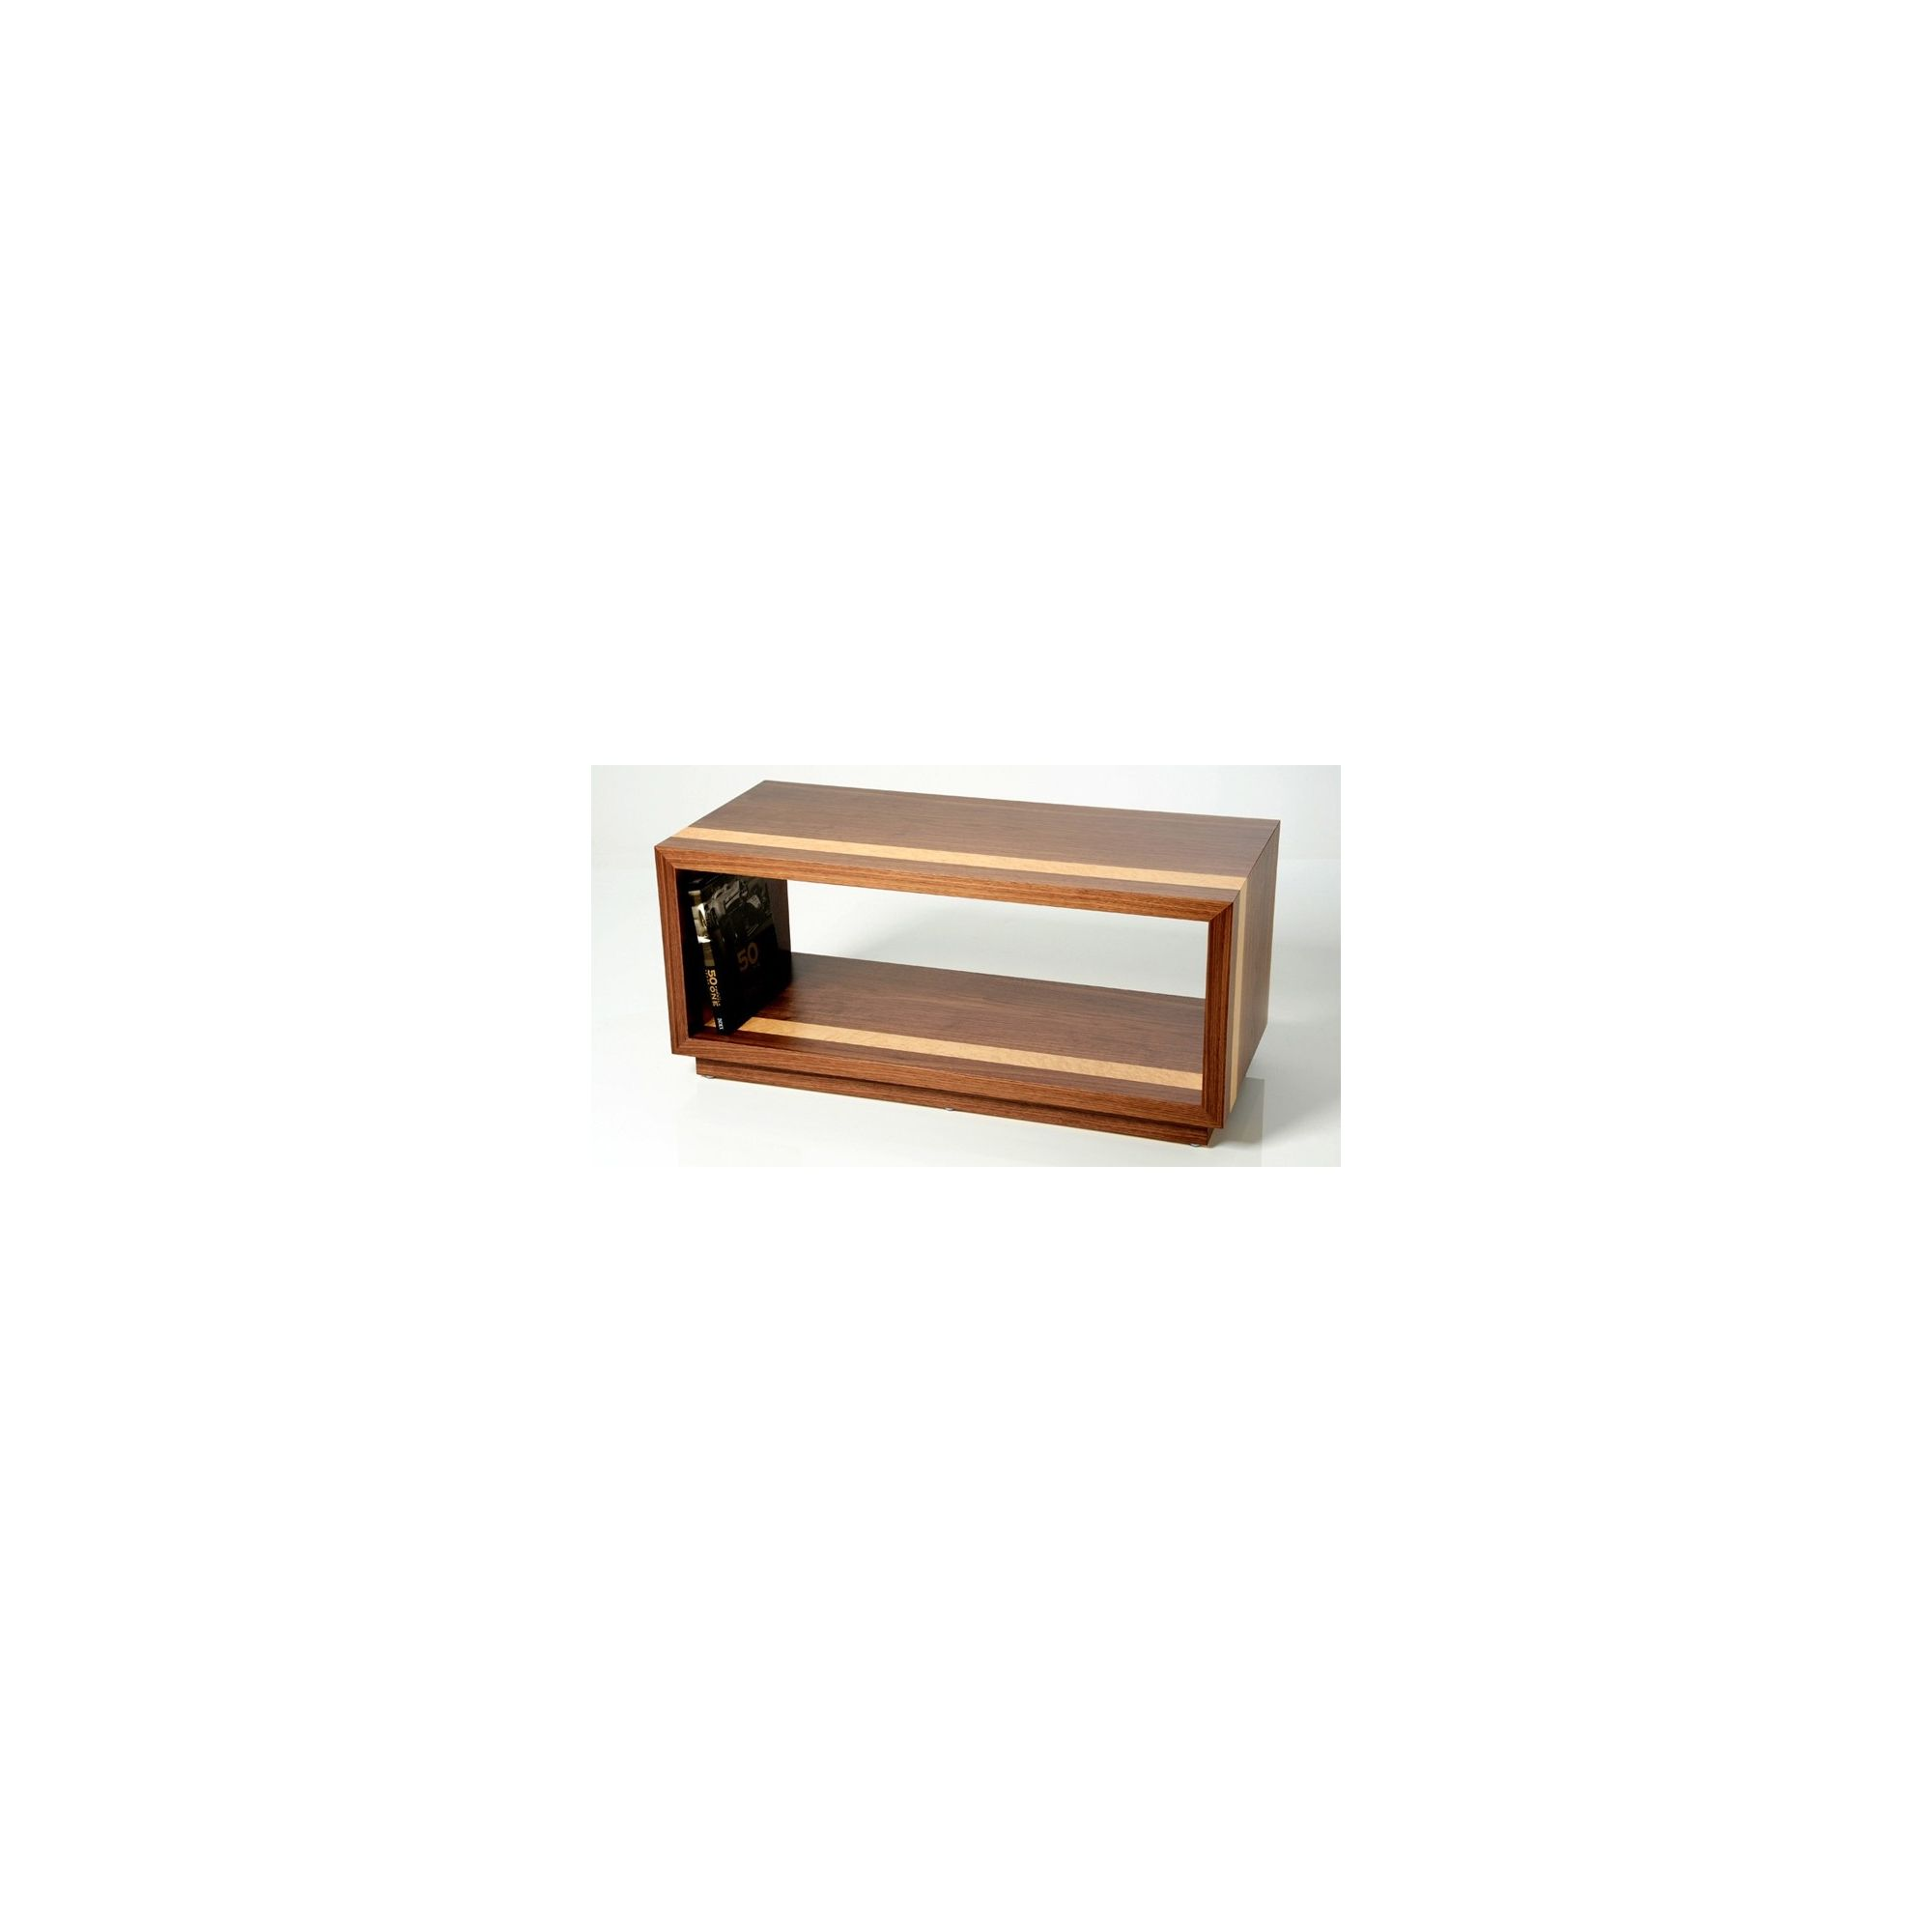 Trefurn Revival Coffee Table - Black Walnut and Birds Eye Maple at Tesco Direct